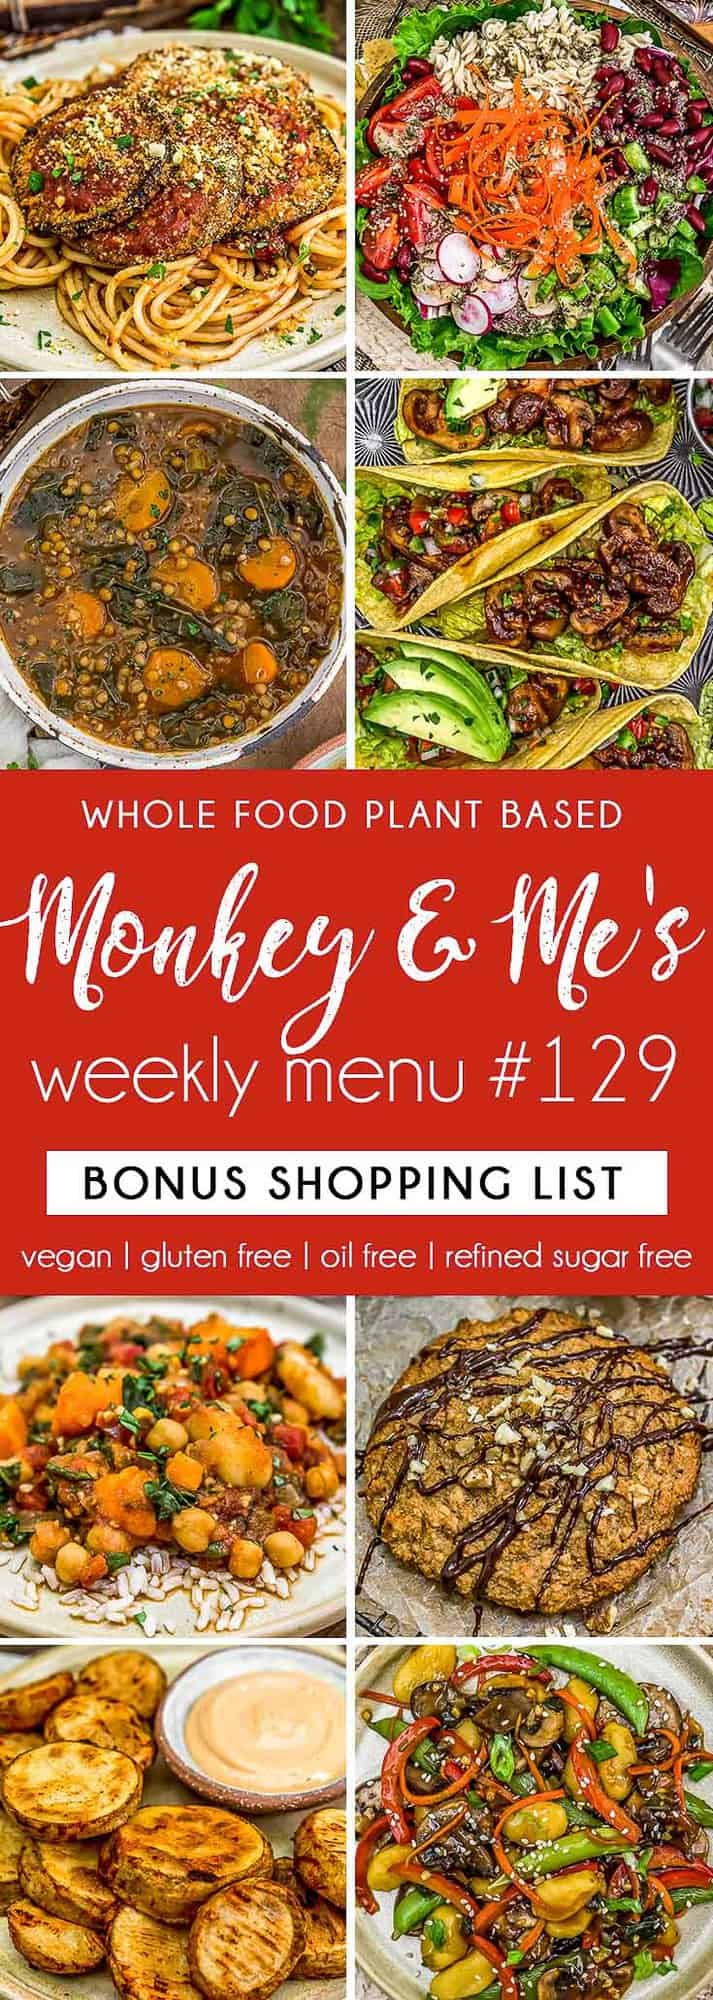 Monkey and Me's Menu 129 featuring 8 recipes